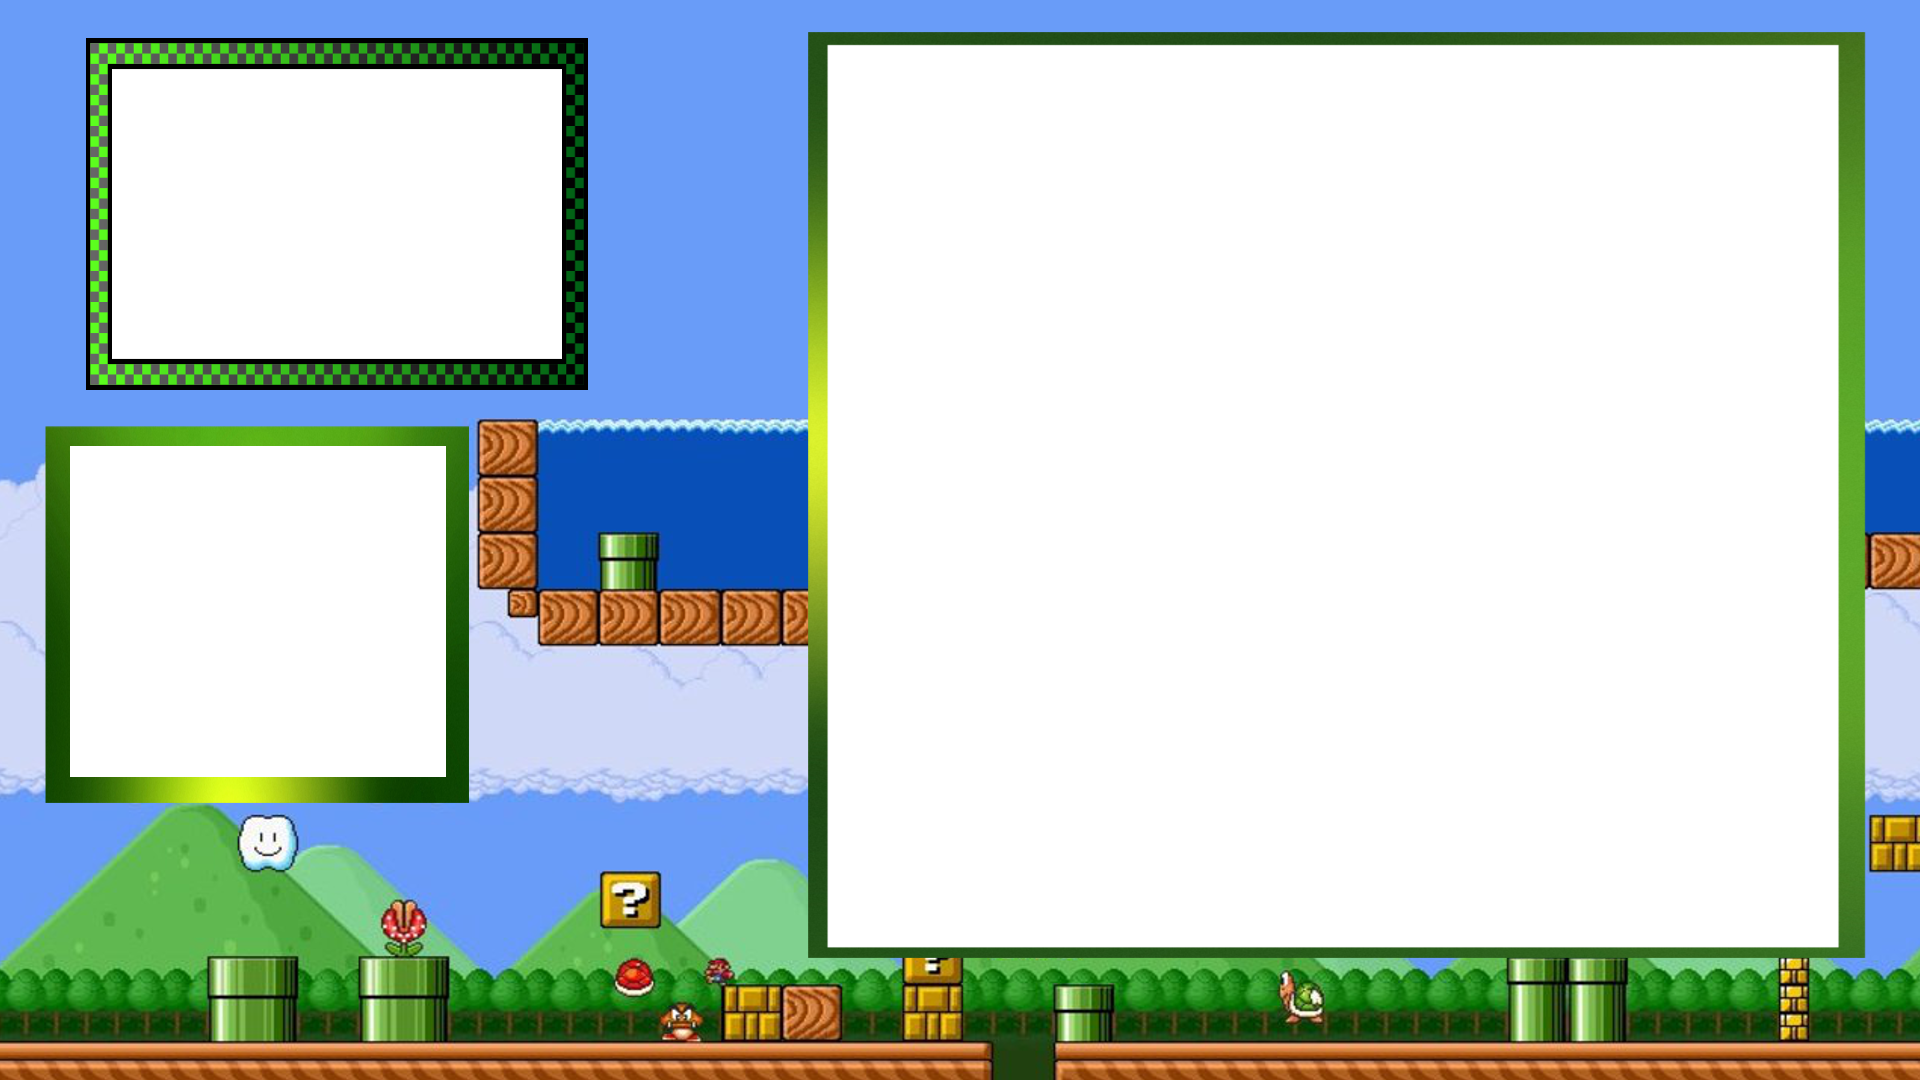 Webcam border overlay png. Mario twitch for retro